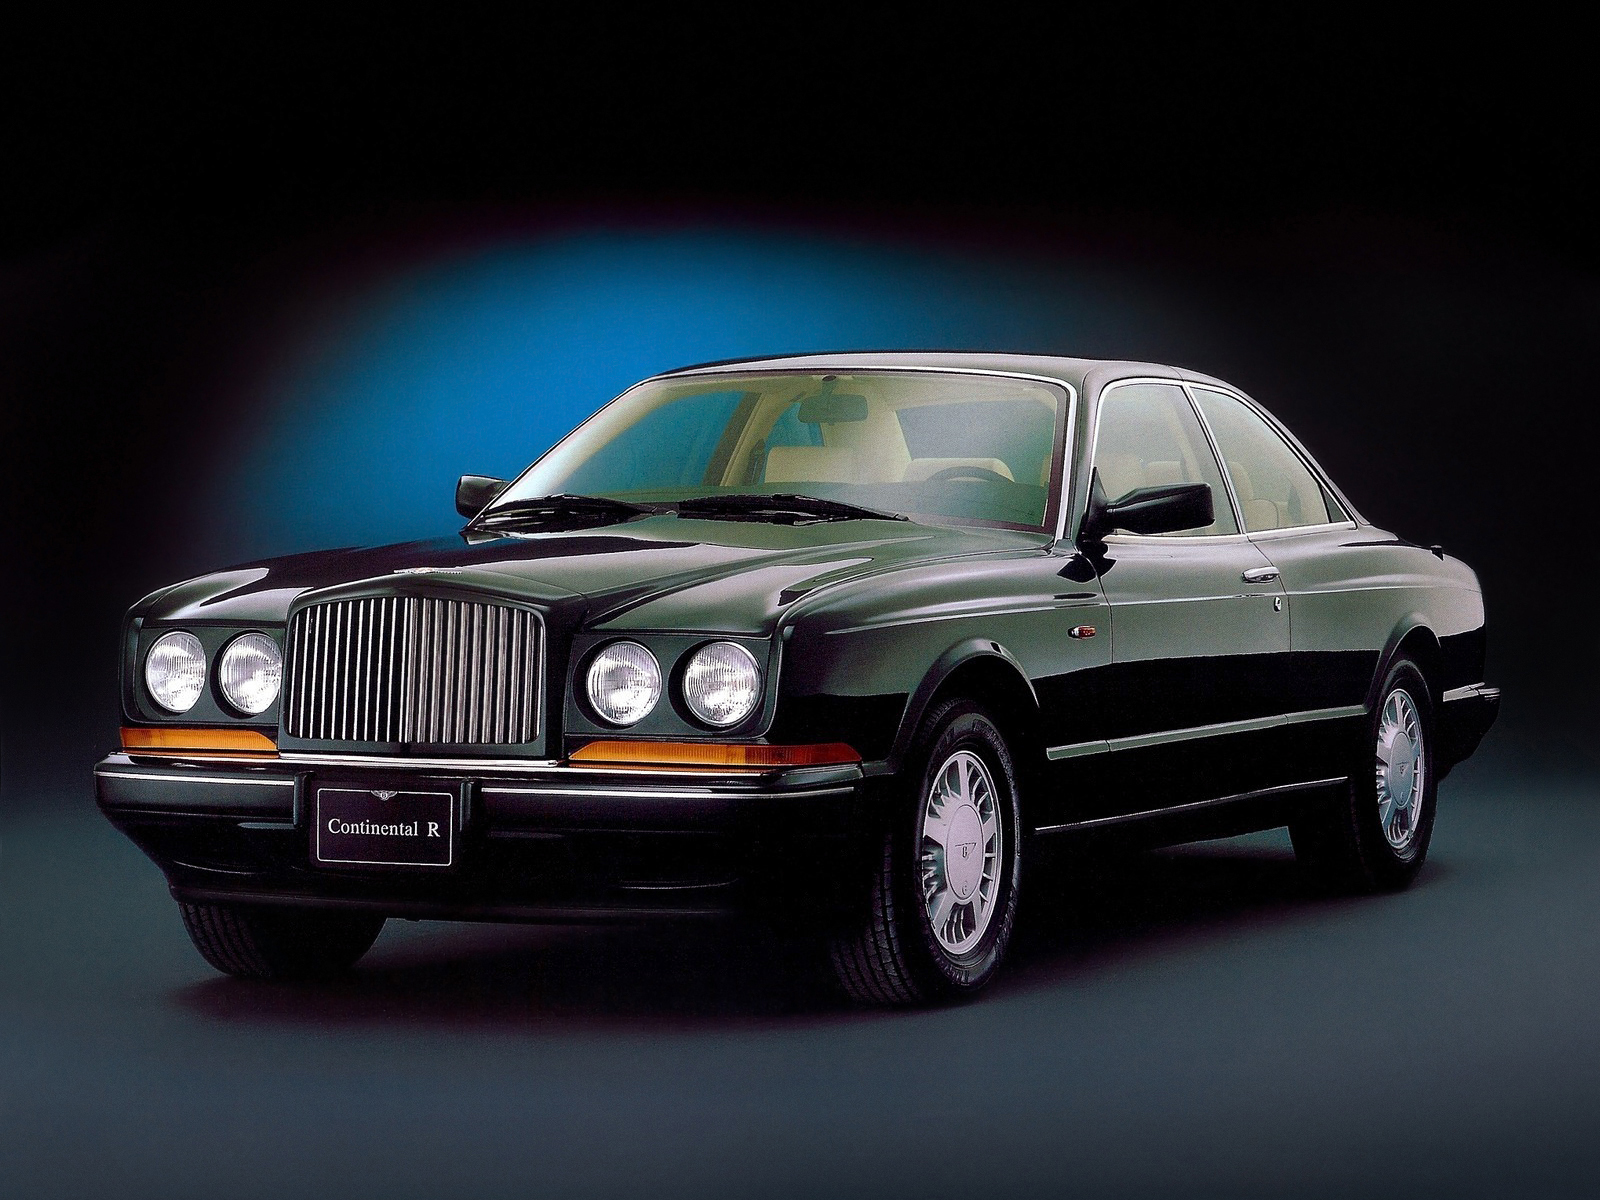 Bentley Continental R, 1991